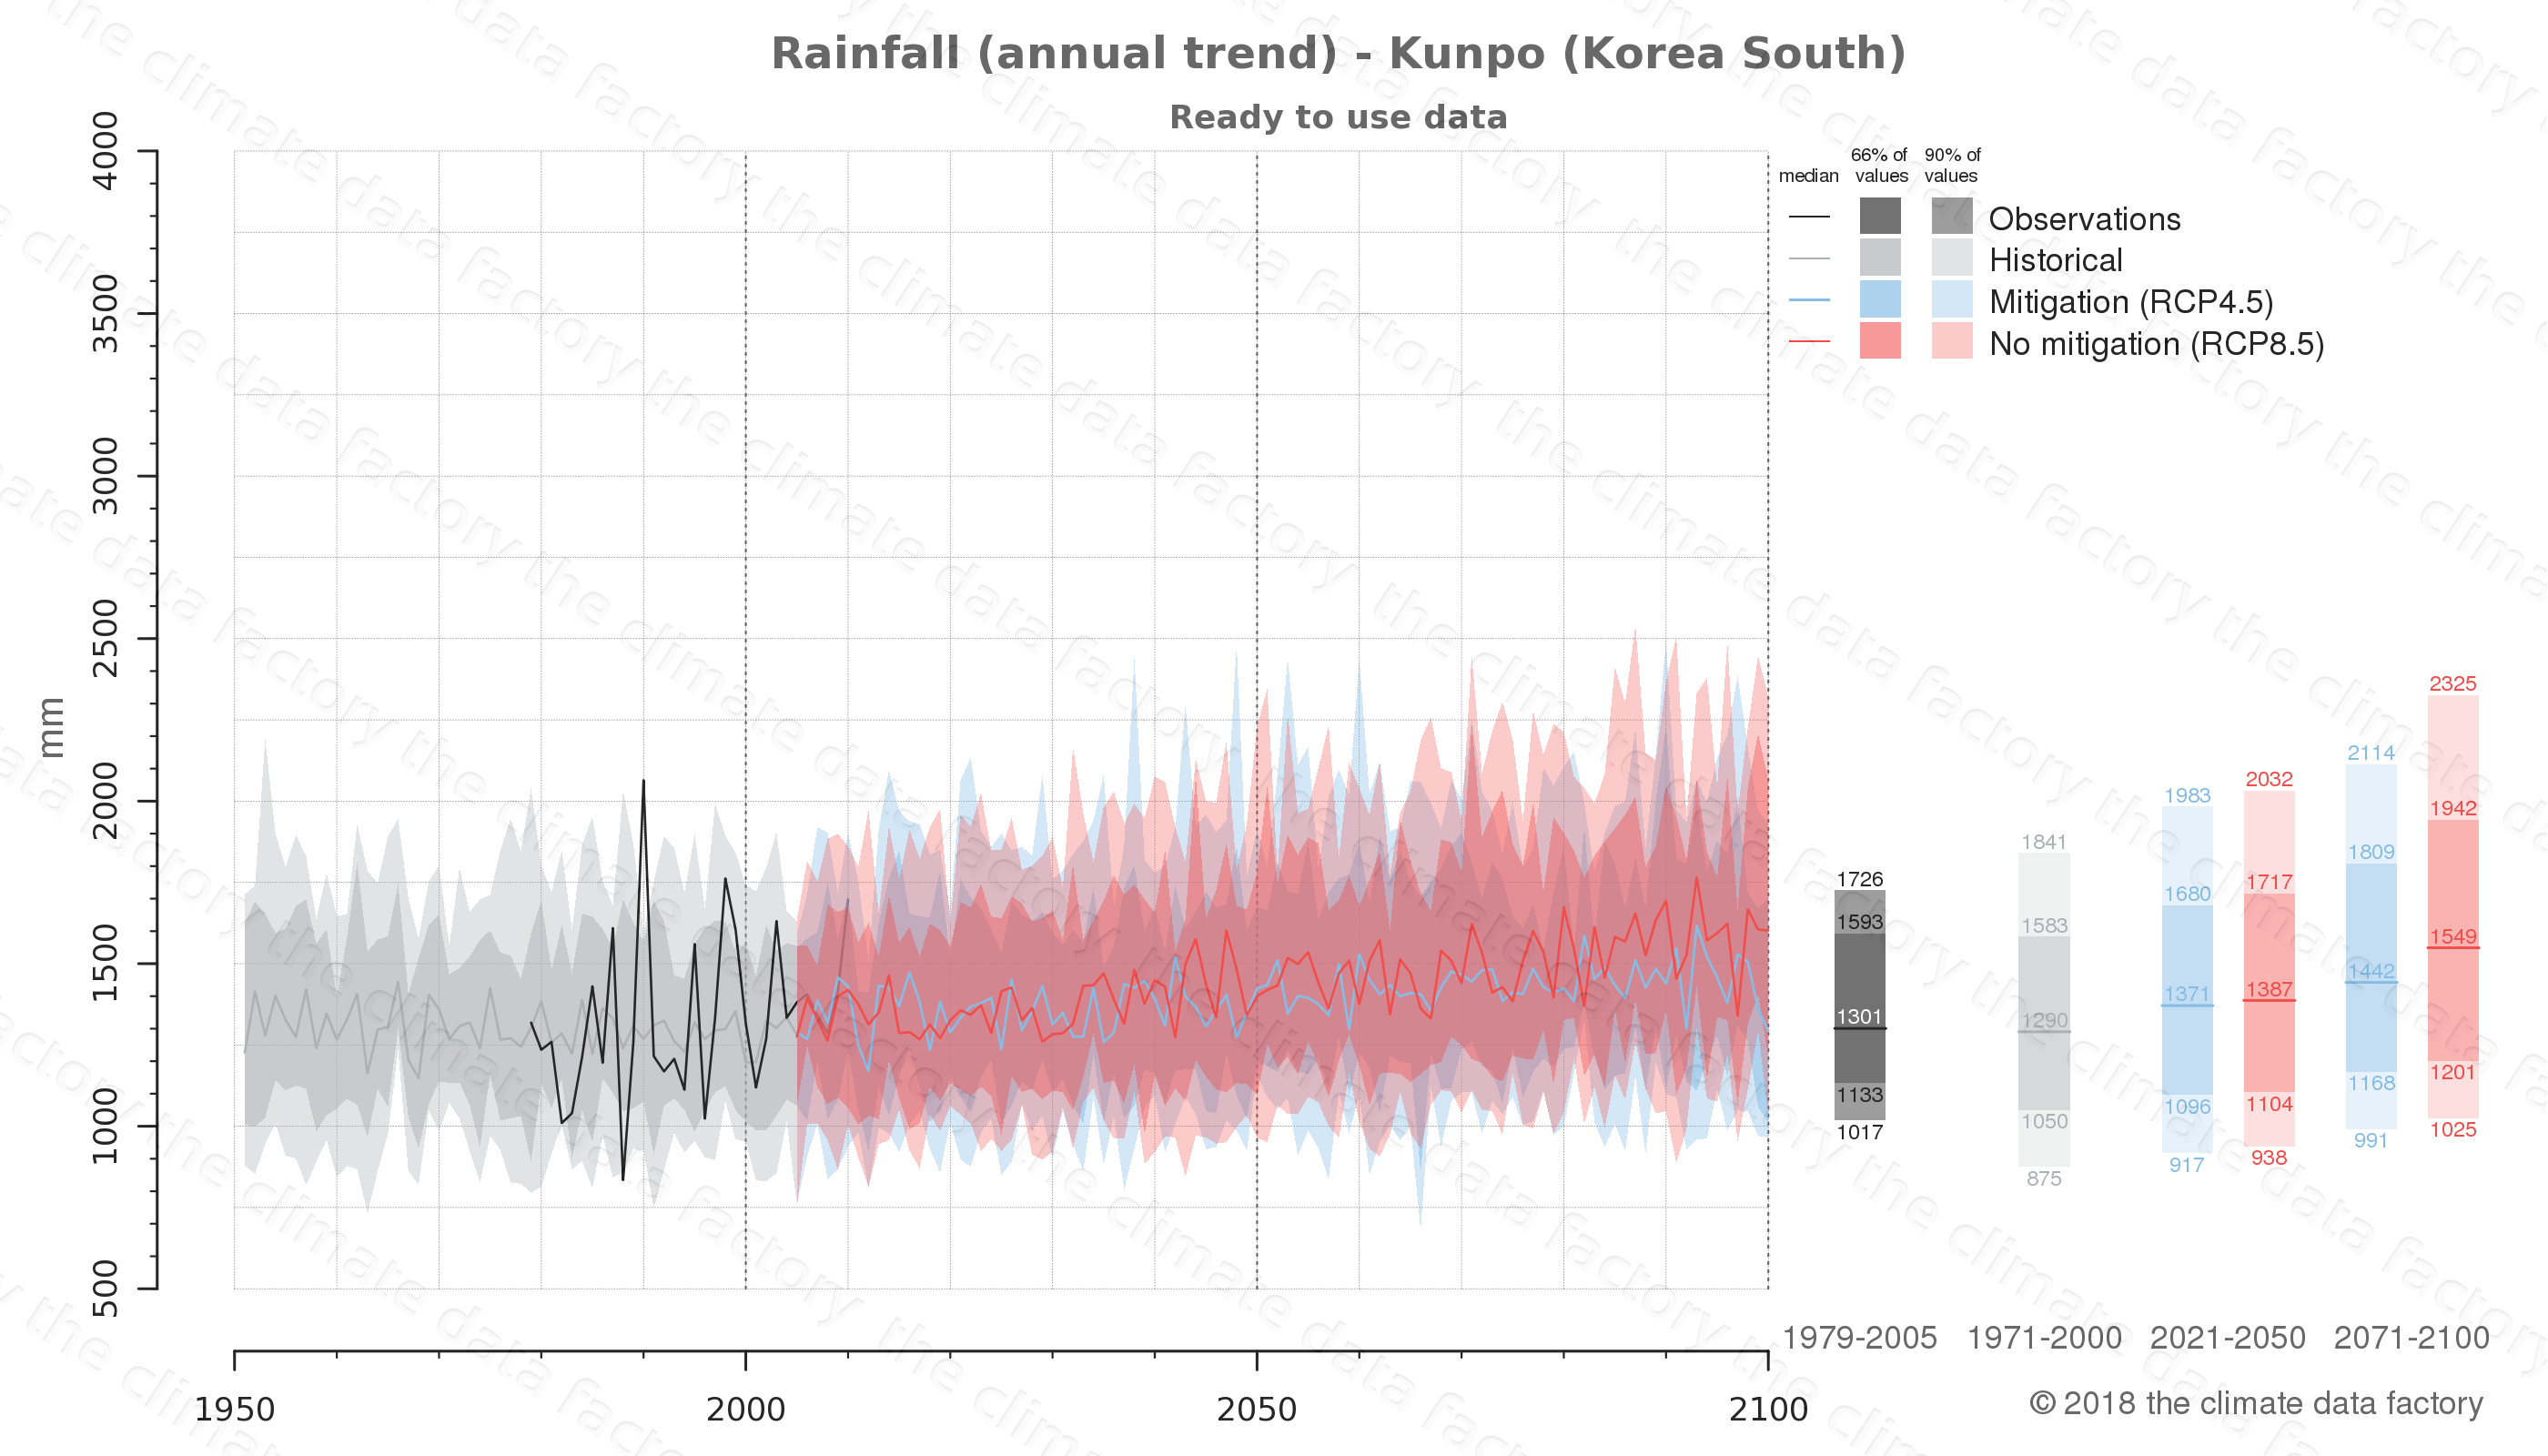 climate change data policy adaptation climate graph city data rainfall kunpo south korea